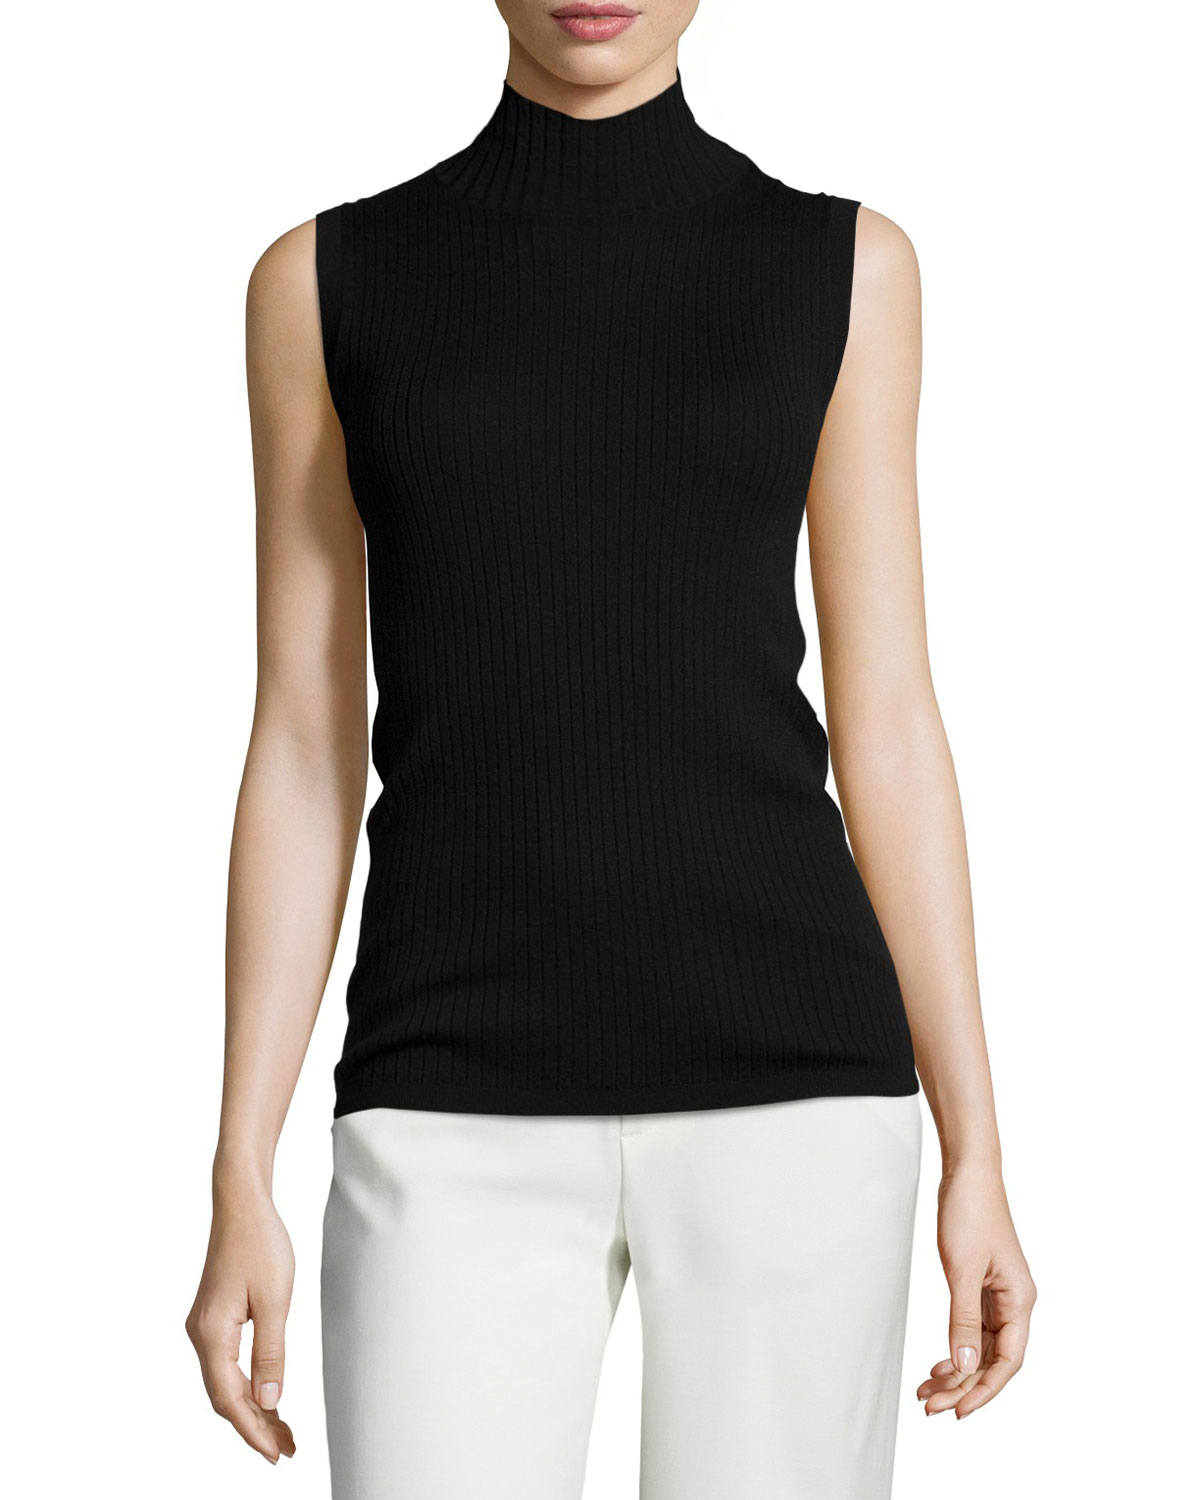 Soft black jersey knit shapes a classic turtleneck atop a cute, sleeveless bodice. This versatile top is super flattering and easy to dress up or down for a day at the office or dinner with the girls!/5().